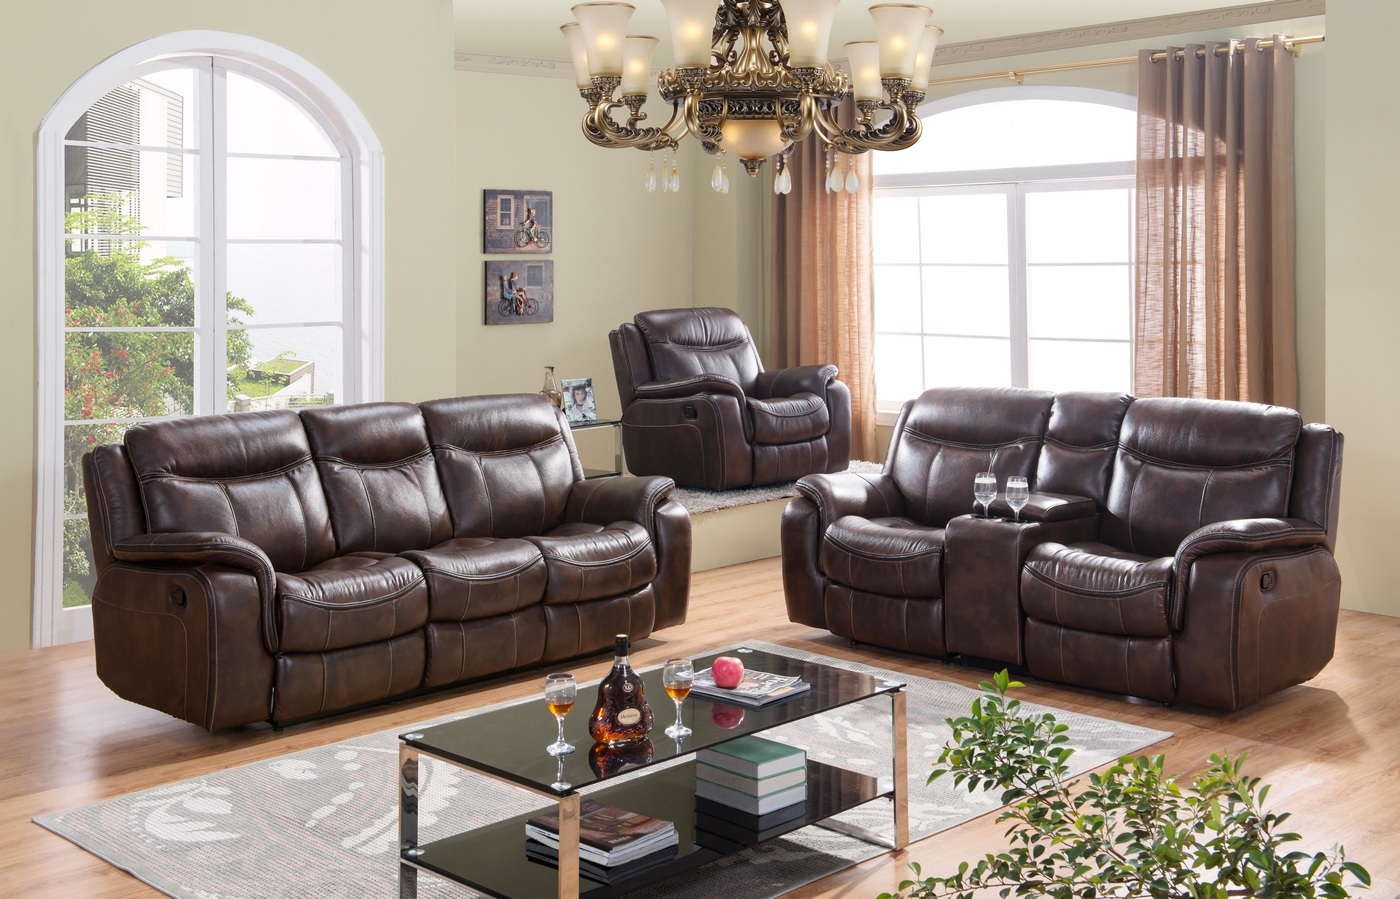 braylon brown reclining sofa loveseat set in leather like fabric. Black Bedroom Furniture Sets. Home Design Ideas